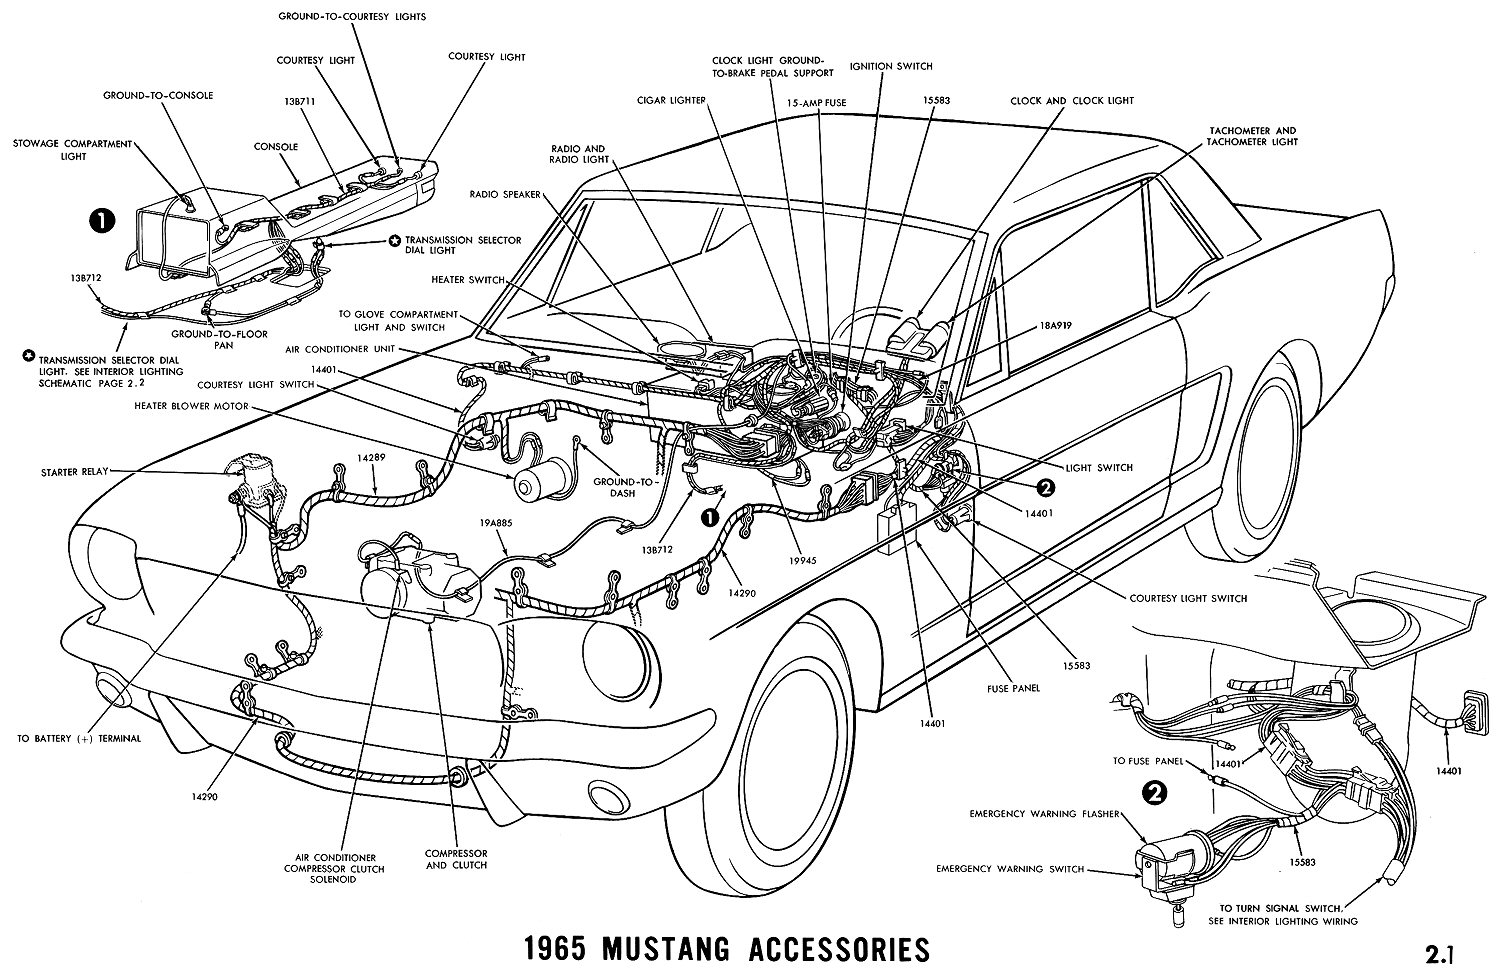 65 mustang accesories 1965 mustang accesories diagram 1966 mustang fuse box location at panicattacktreatment.co